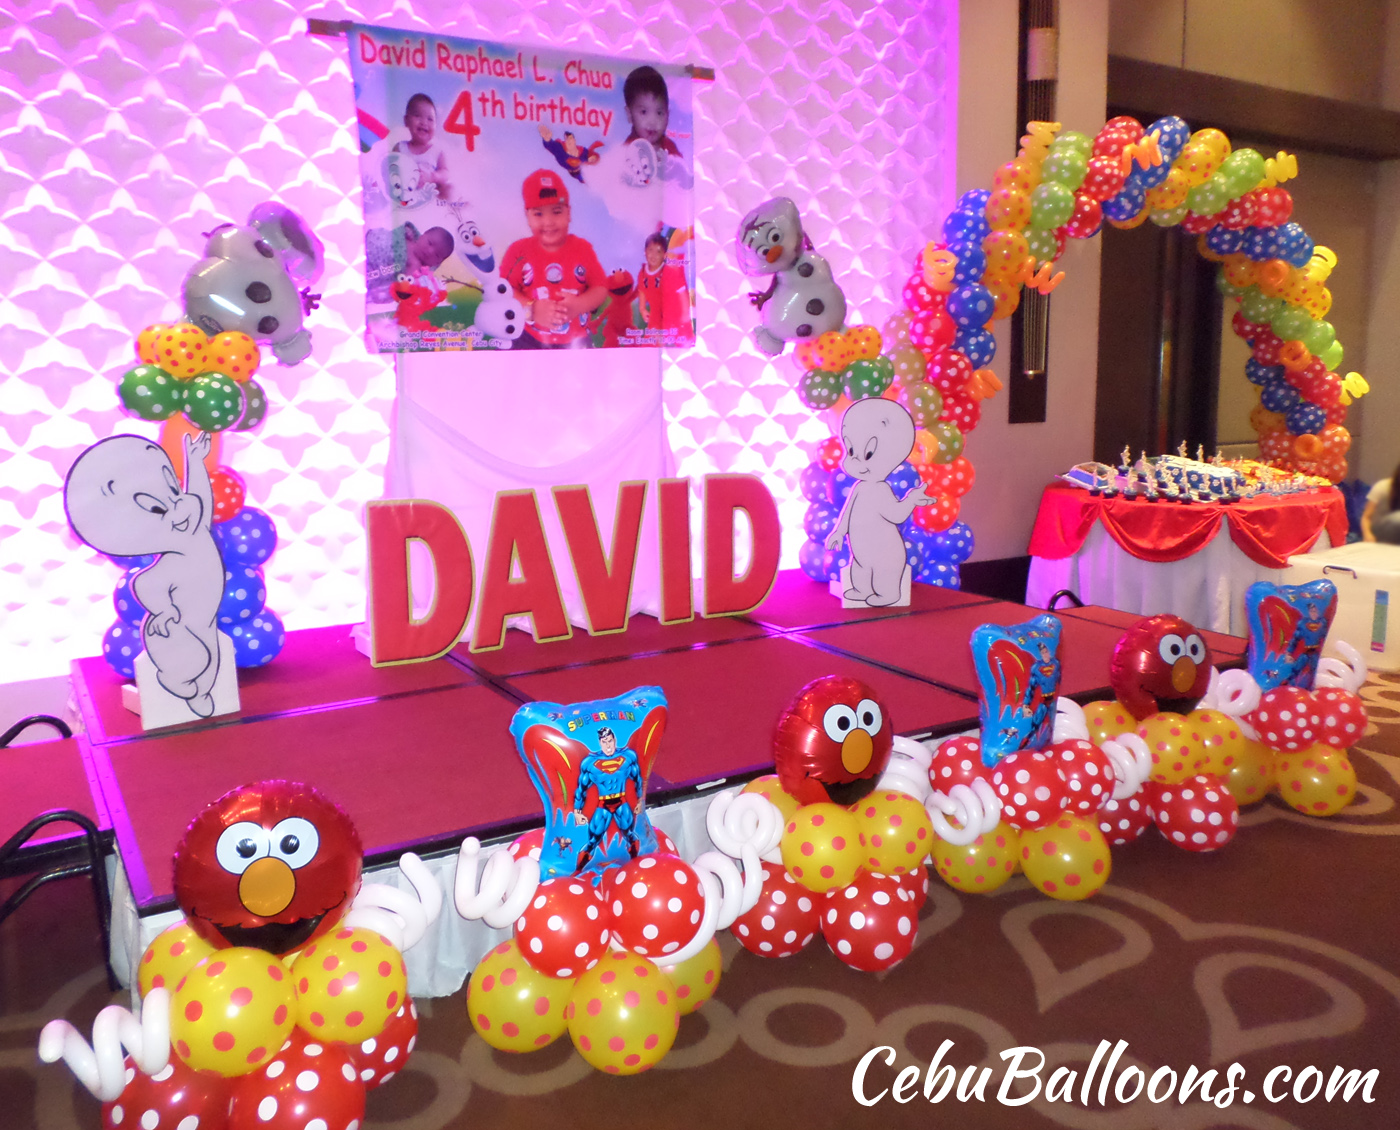 decoration ideas for multi-themed birthdays & double celebrations